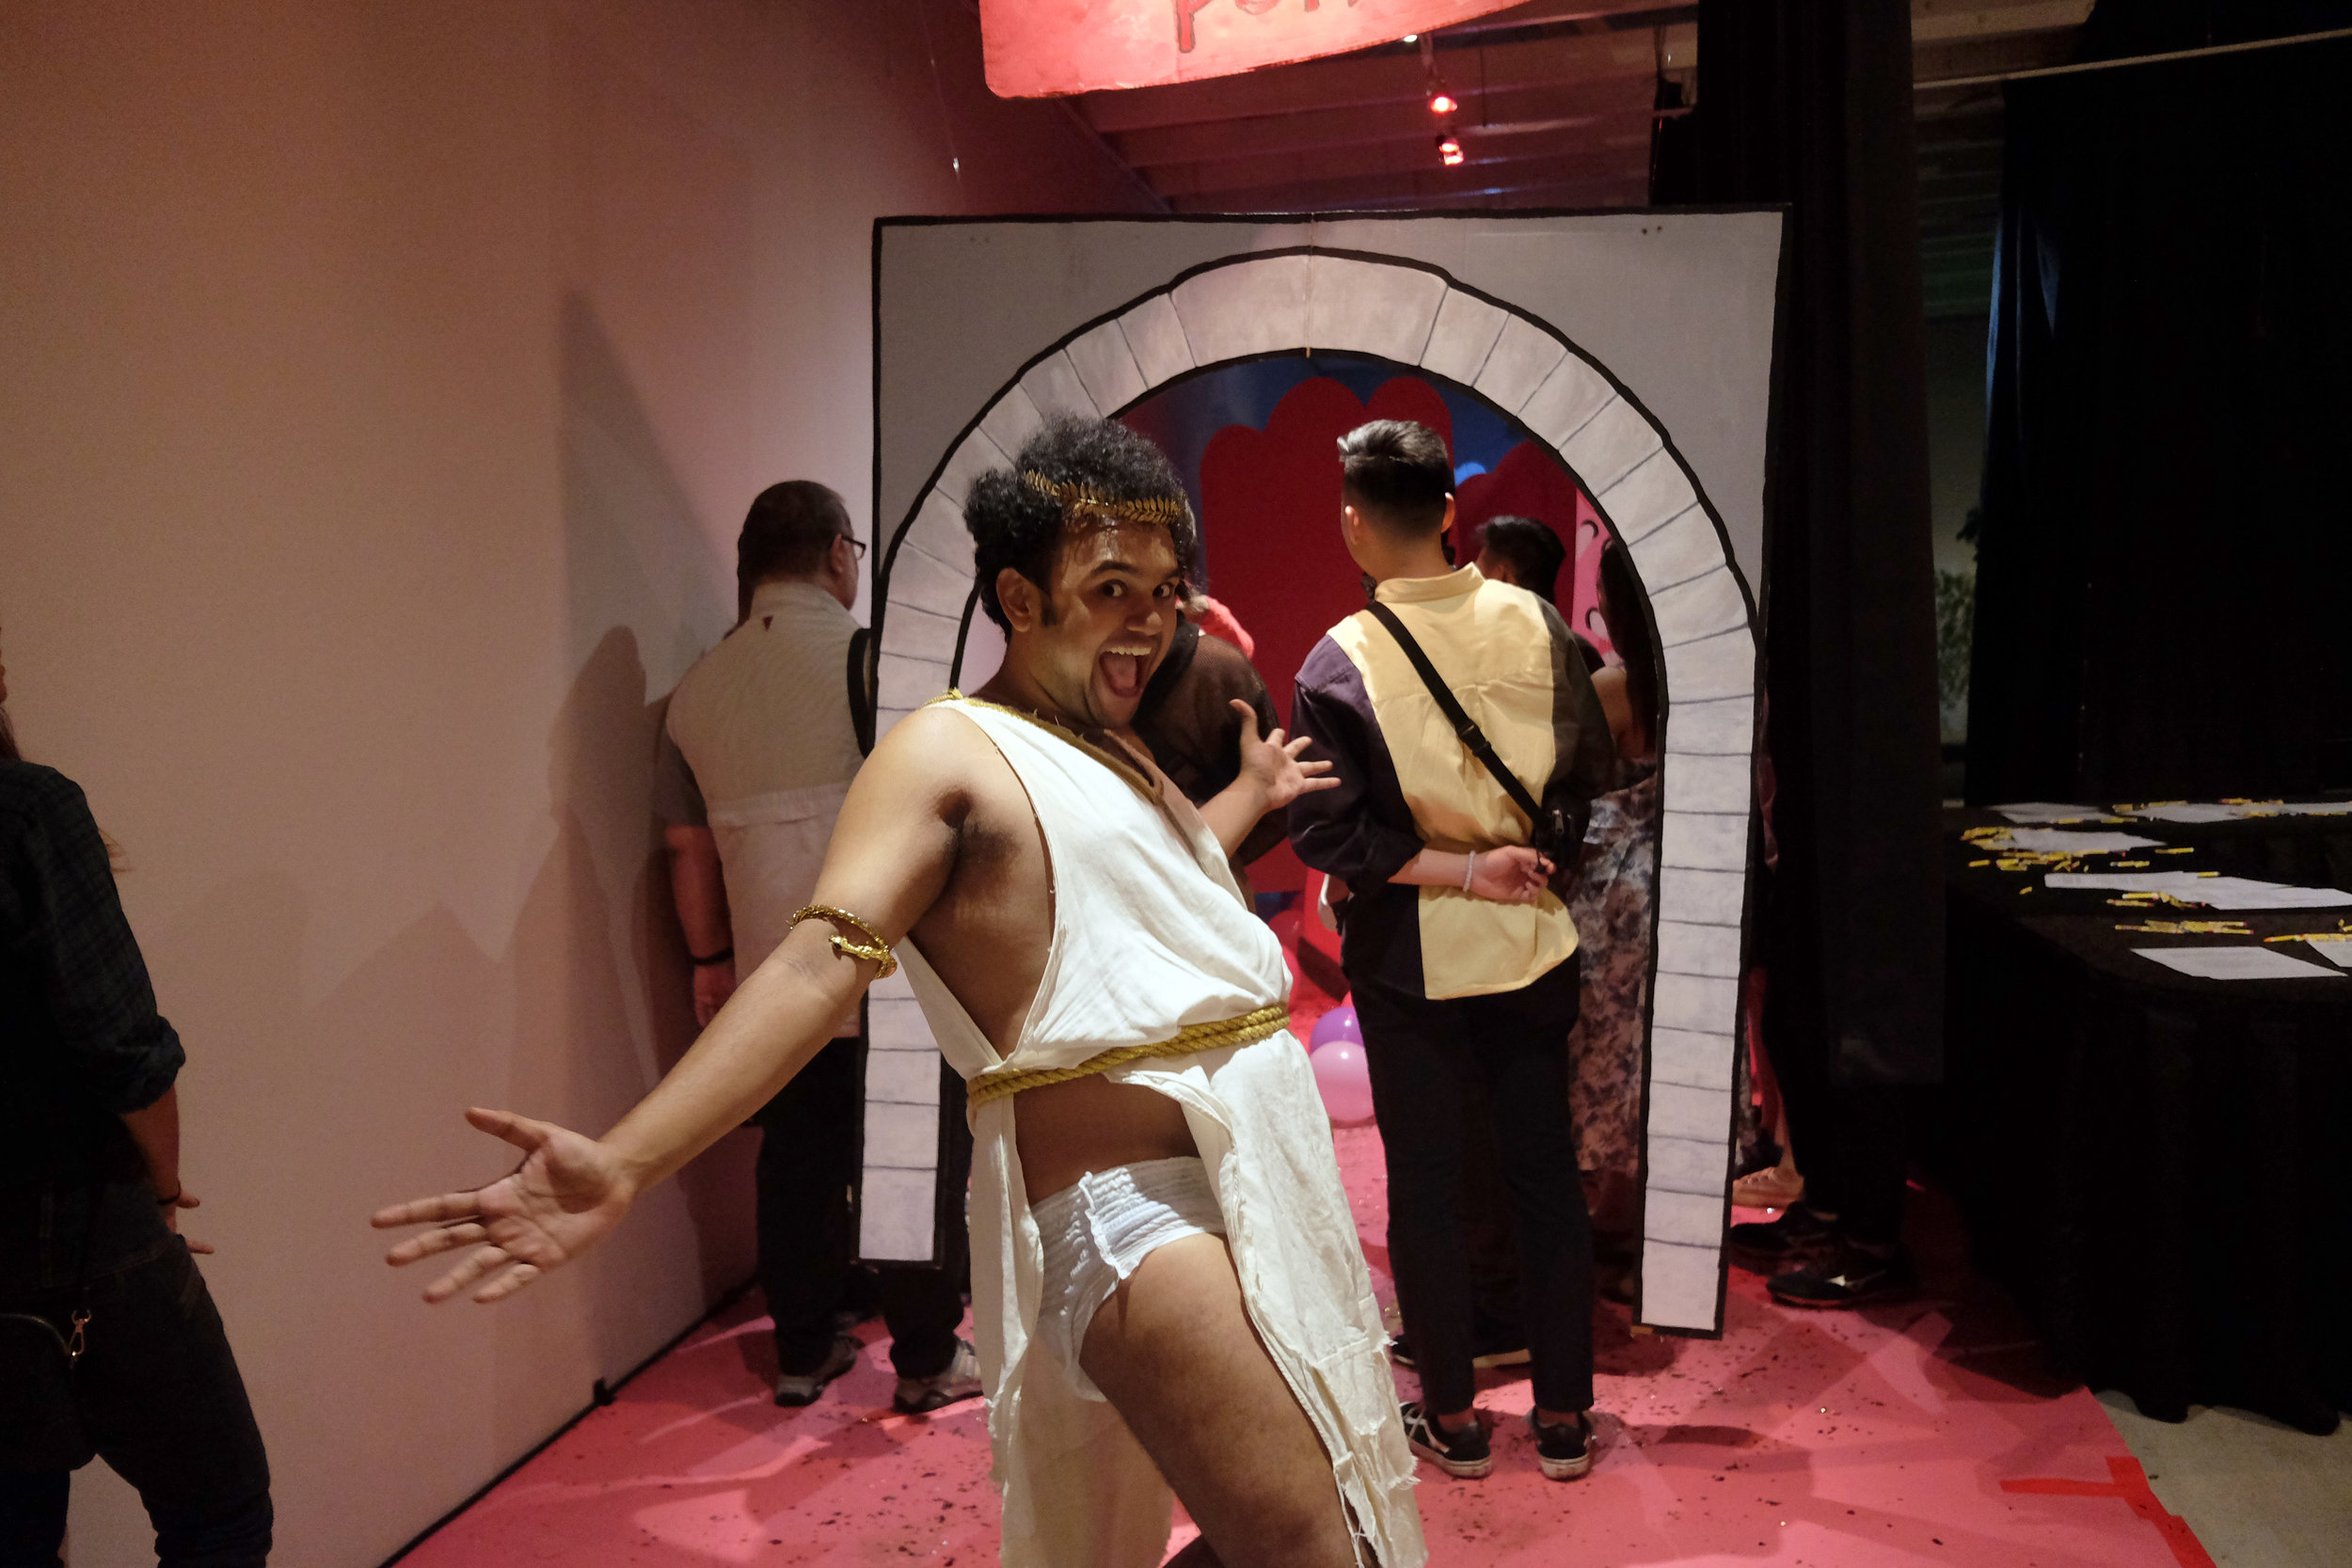 An actor standing in front of an archway, as part of Patch and Punnet's interactive theatre experience, 'Cupid's Theatre'.